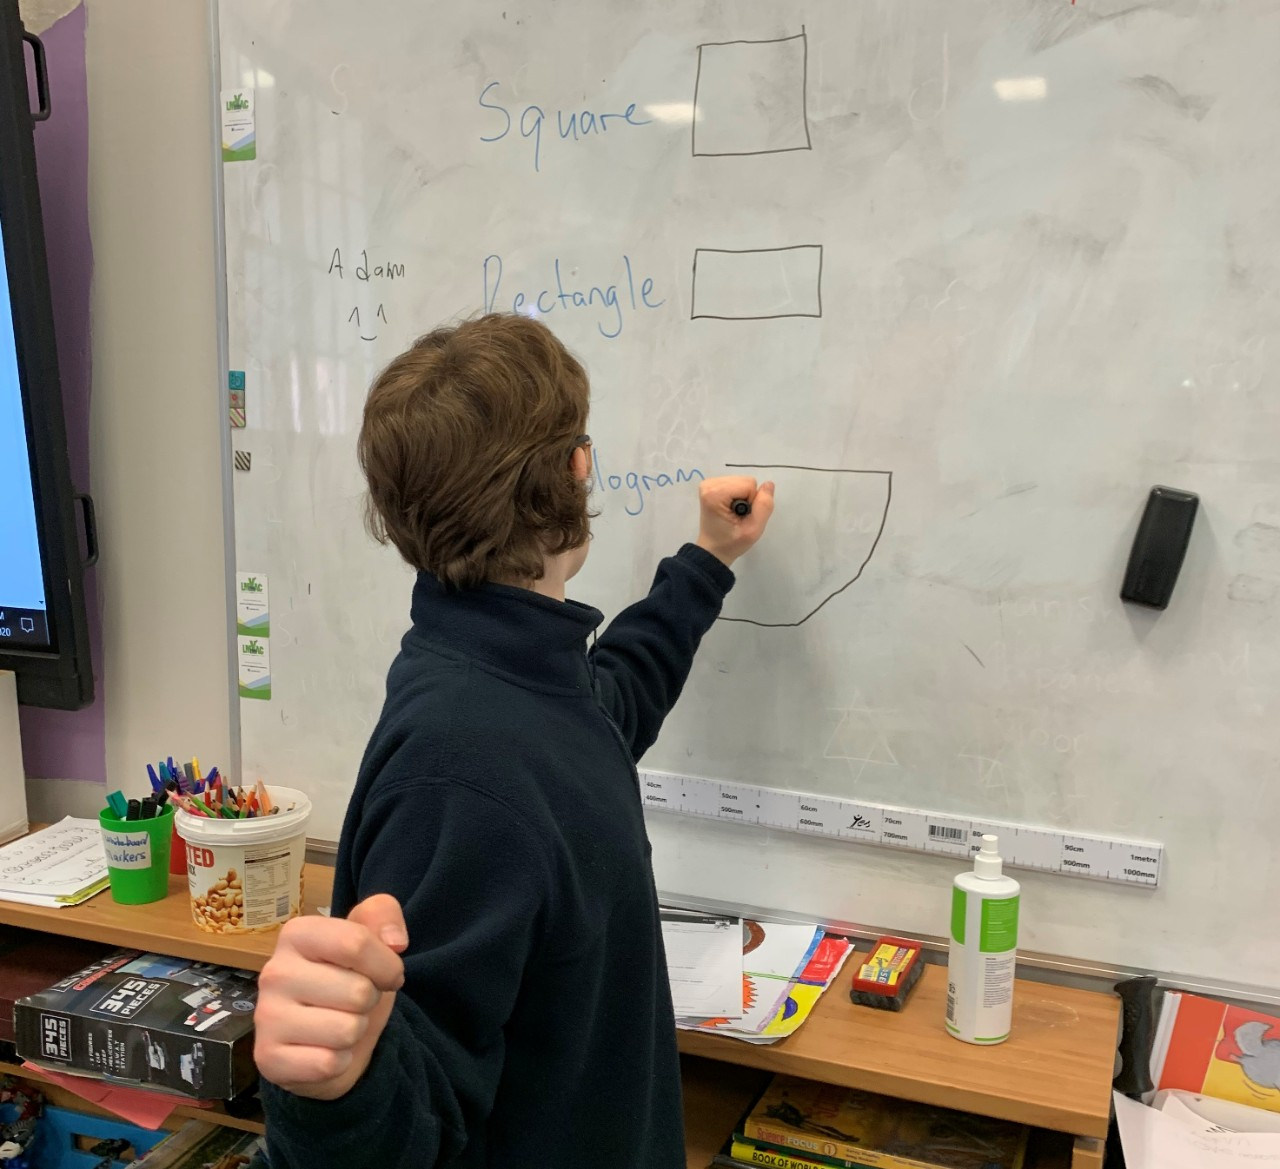 Student using whiteboard